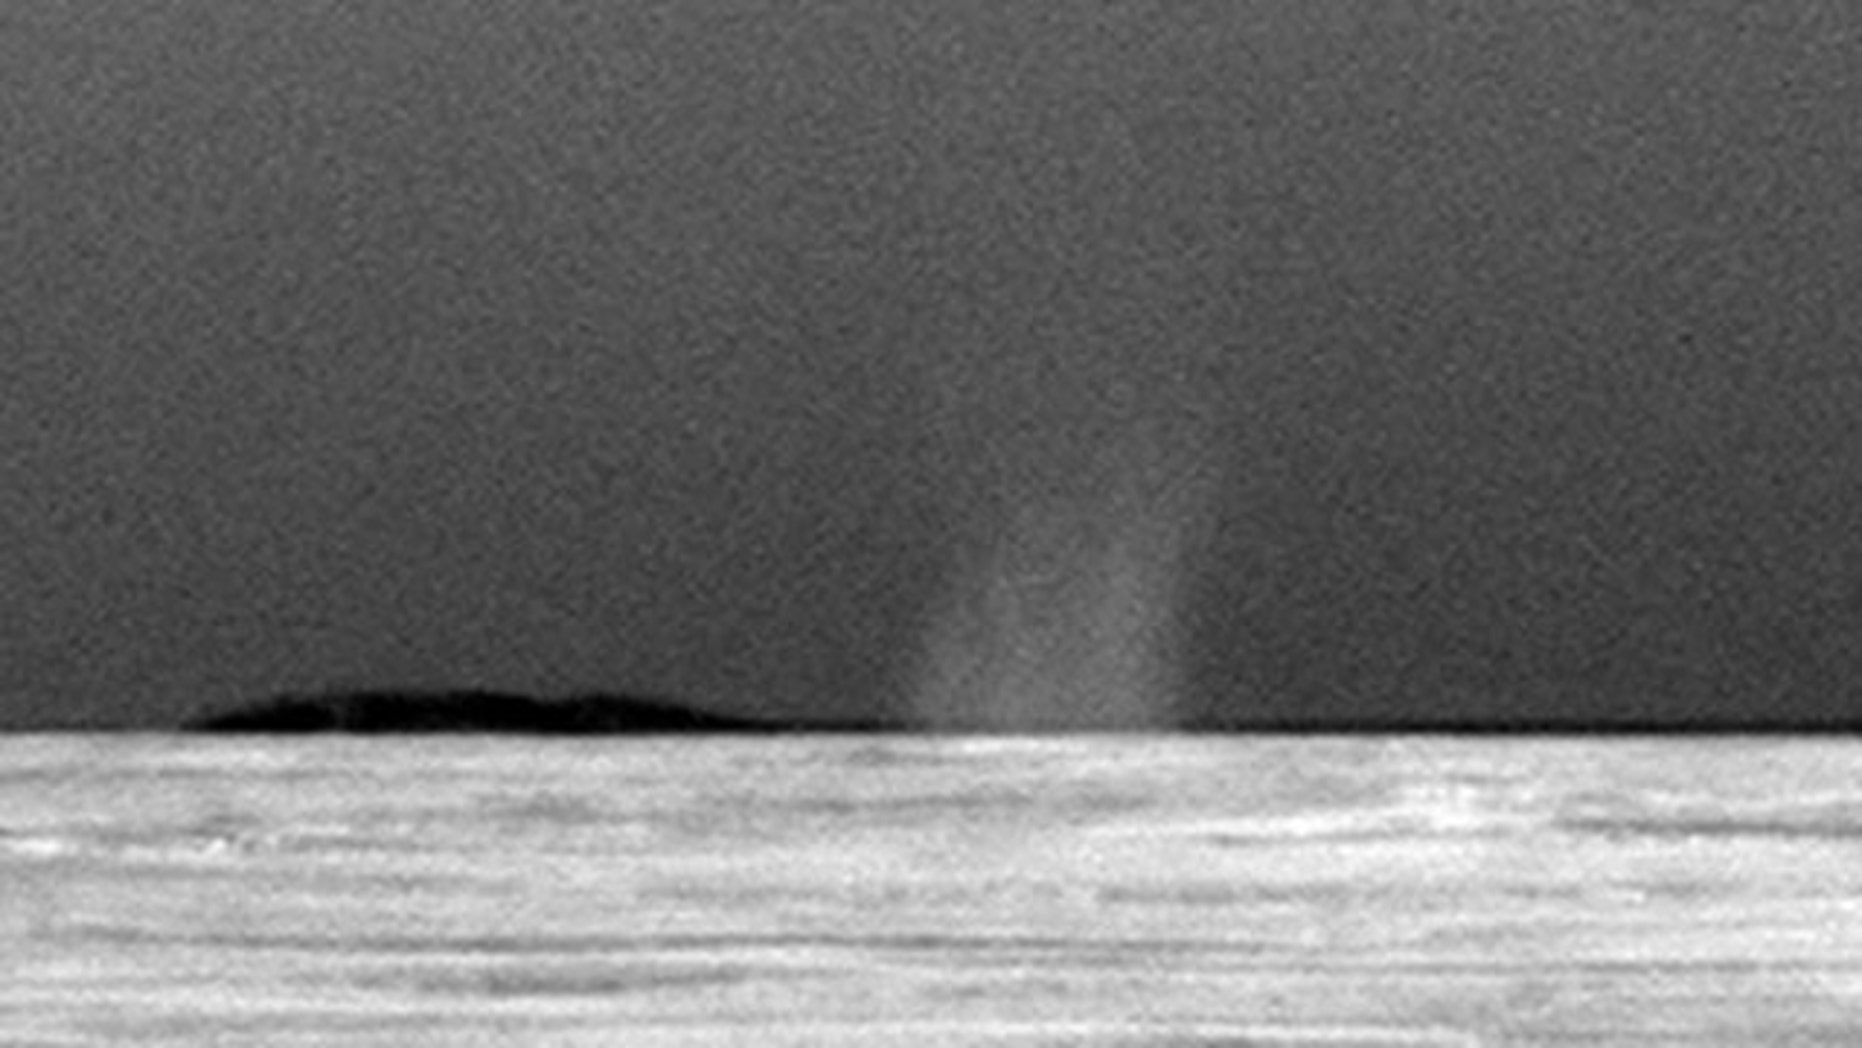 This photo taken July 15, 2010 shows the first dust devil observed by NASA's Mars Exploration Rover Opportunity in the rover's six-and-a-half years on Mars.